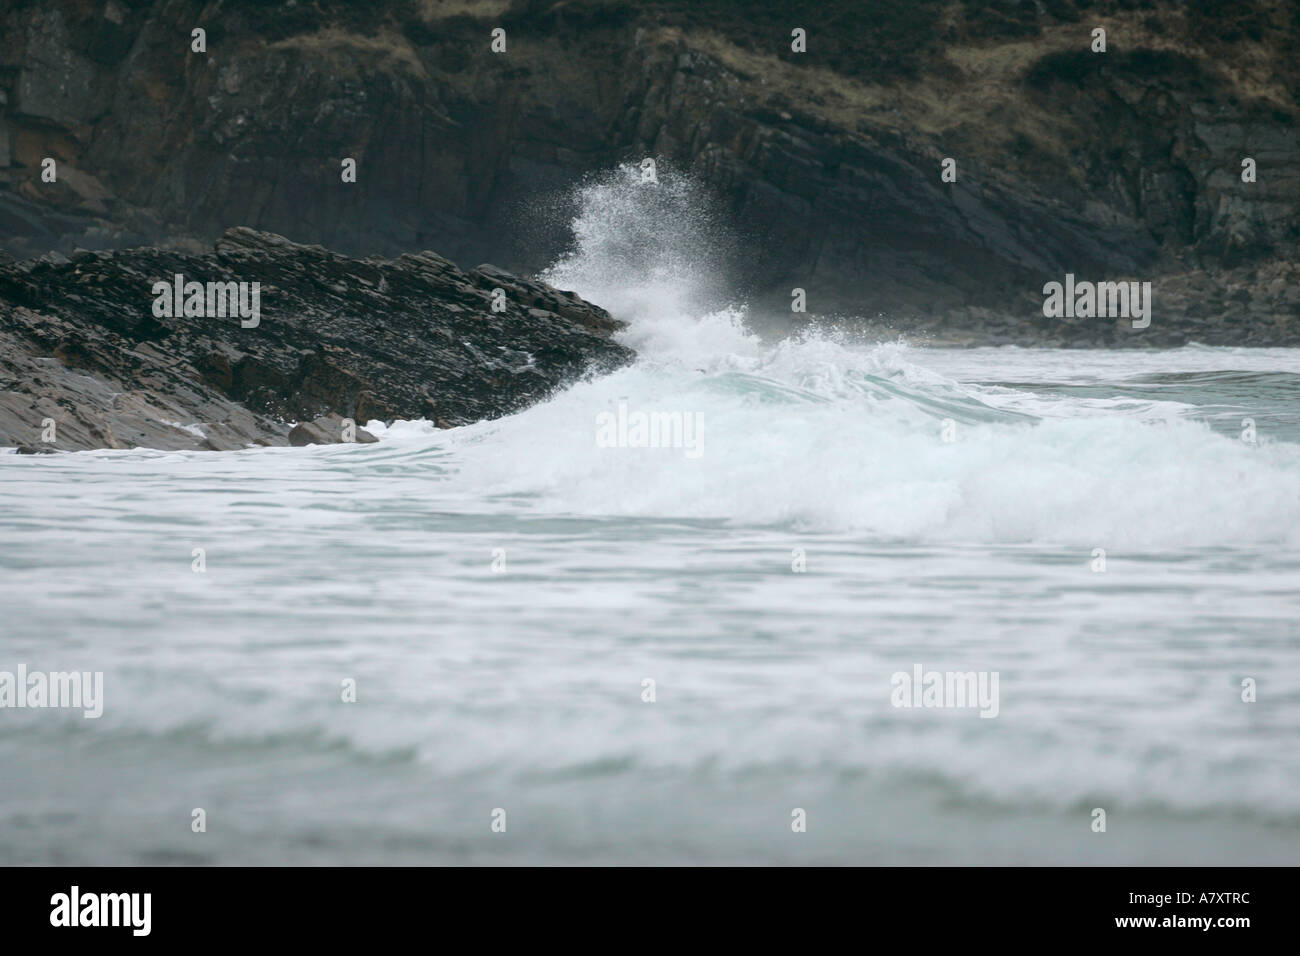 waves crash on rocks in stormy sea on Tra Na Rossan beach near Downings County Donegal Republic of Ireland - Stock Image